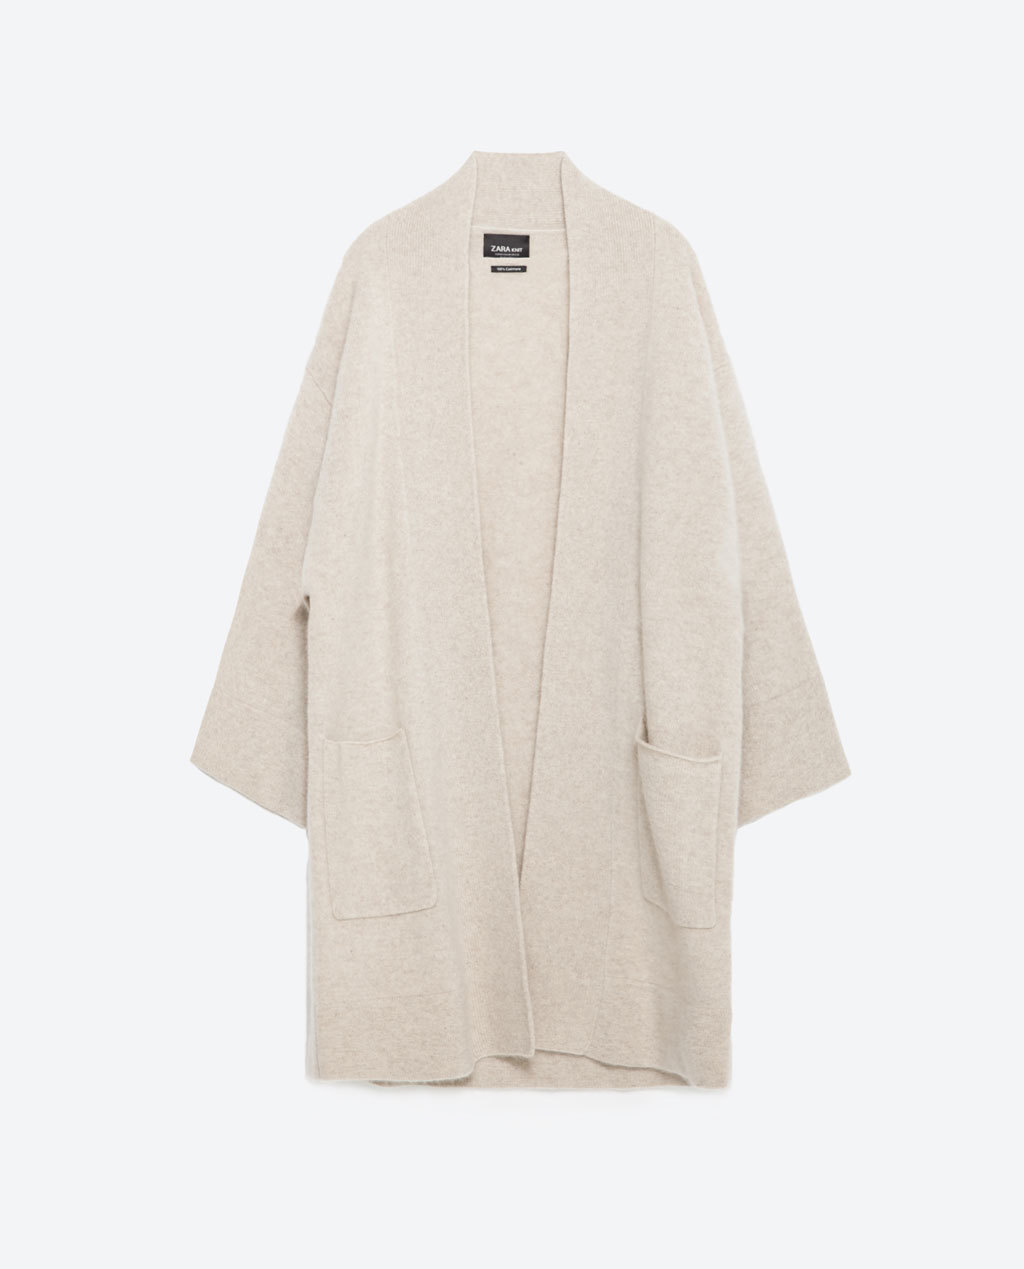 Cashmere Cardigan - sleeve style: dolman/batwing; pattern: plain; neckline: collarless open; style: open front; predominant colour: stone; occasions: casual, creative work; fit: loose; length: mid thigh; sleeve length: long sleeve; texture group: knits/crochet; season: a/w 2015; wardrobe: basic